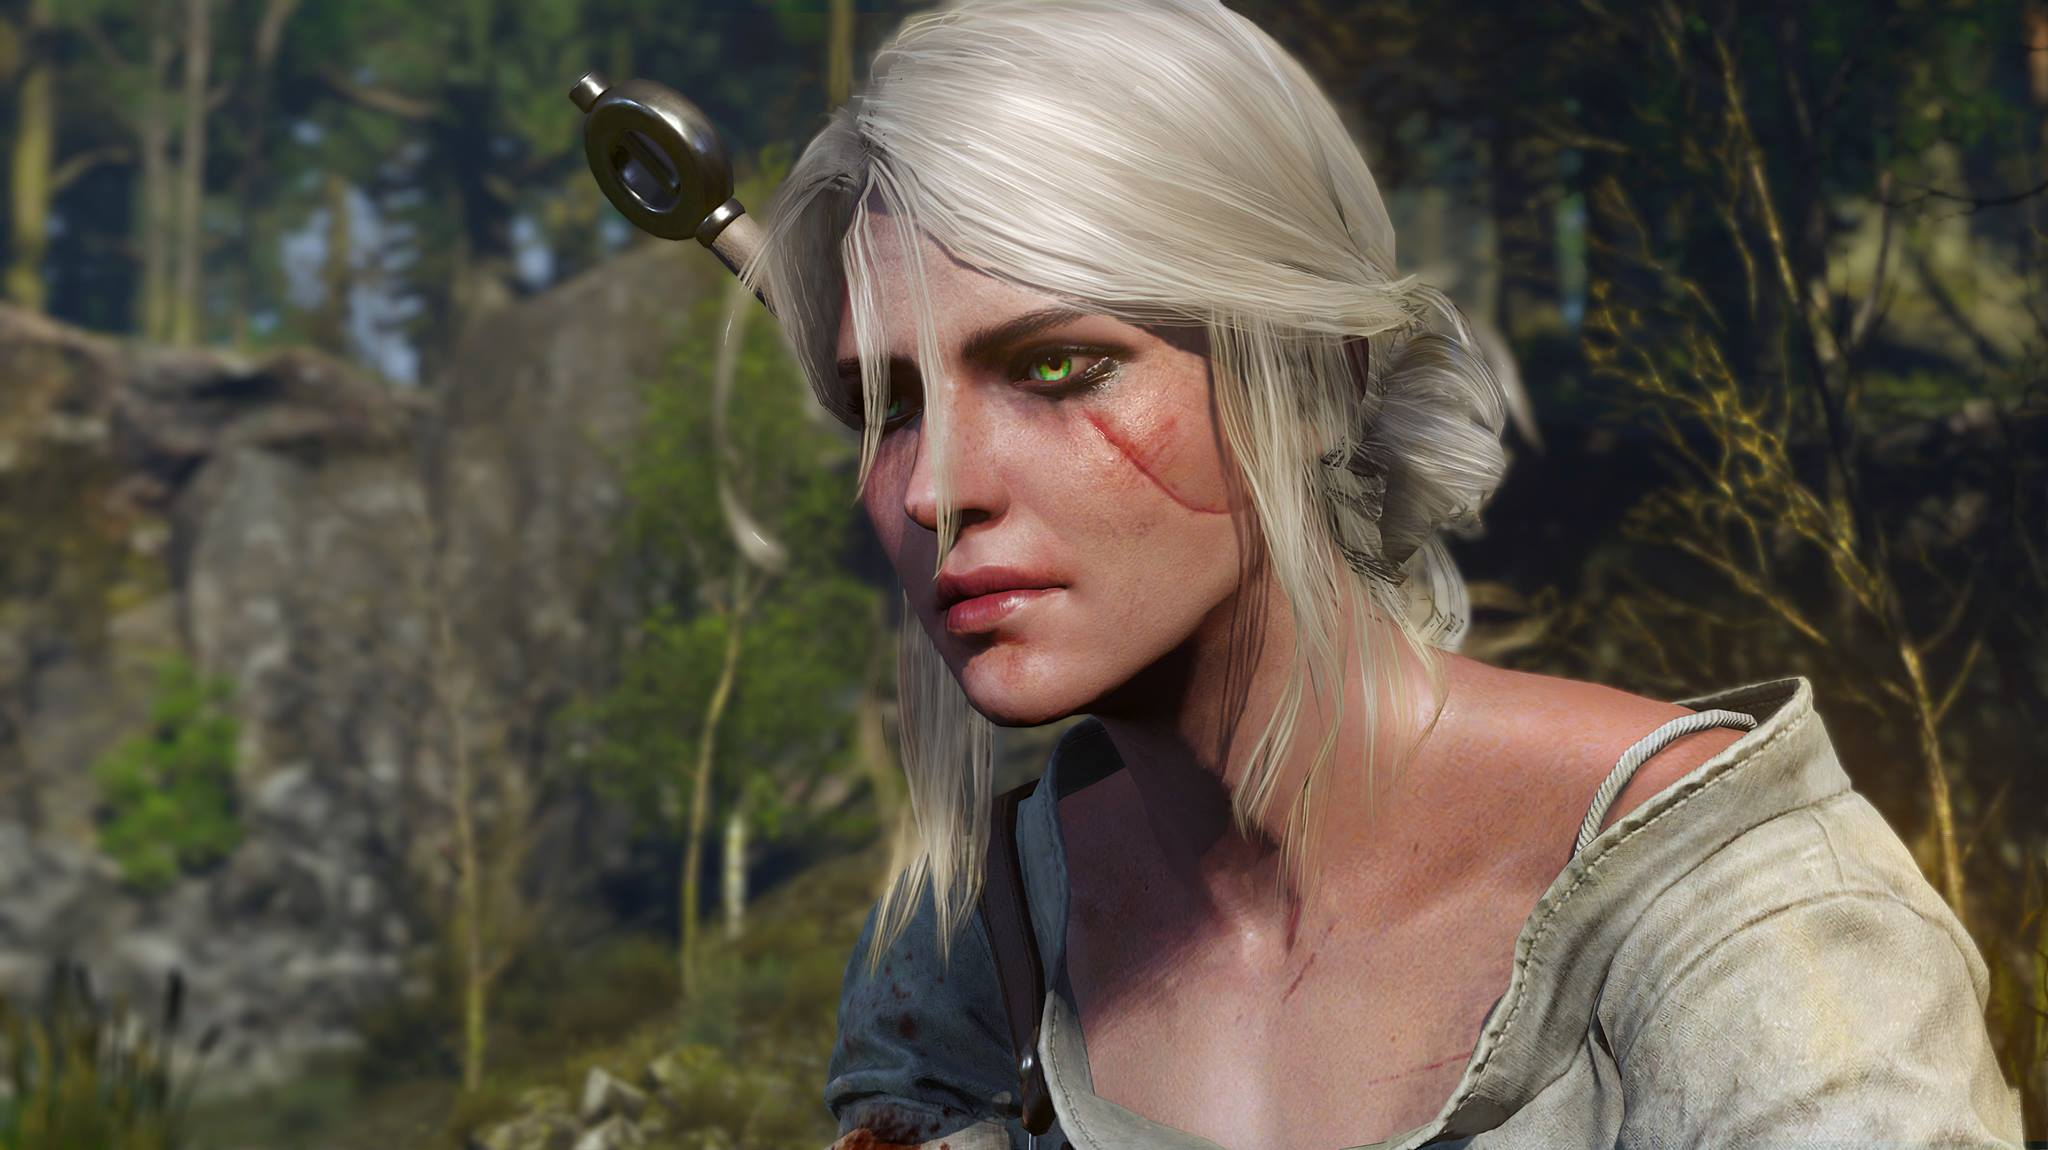 http://www.3dnews.ru/assets/external/illustrations/2015/05/01/913584/witcher%203%20ciri%2002.jpg